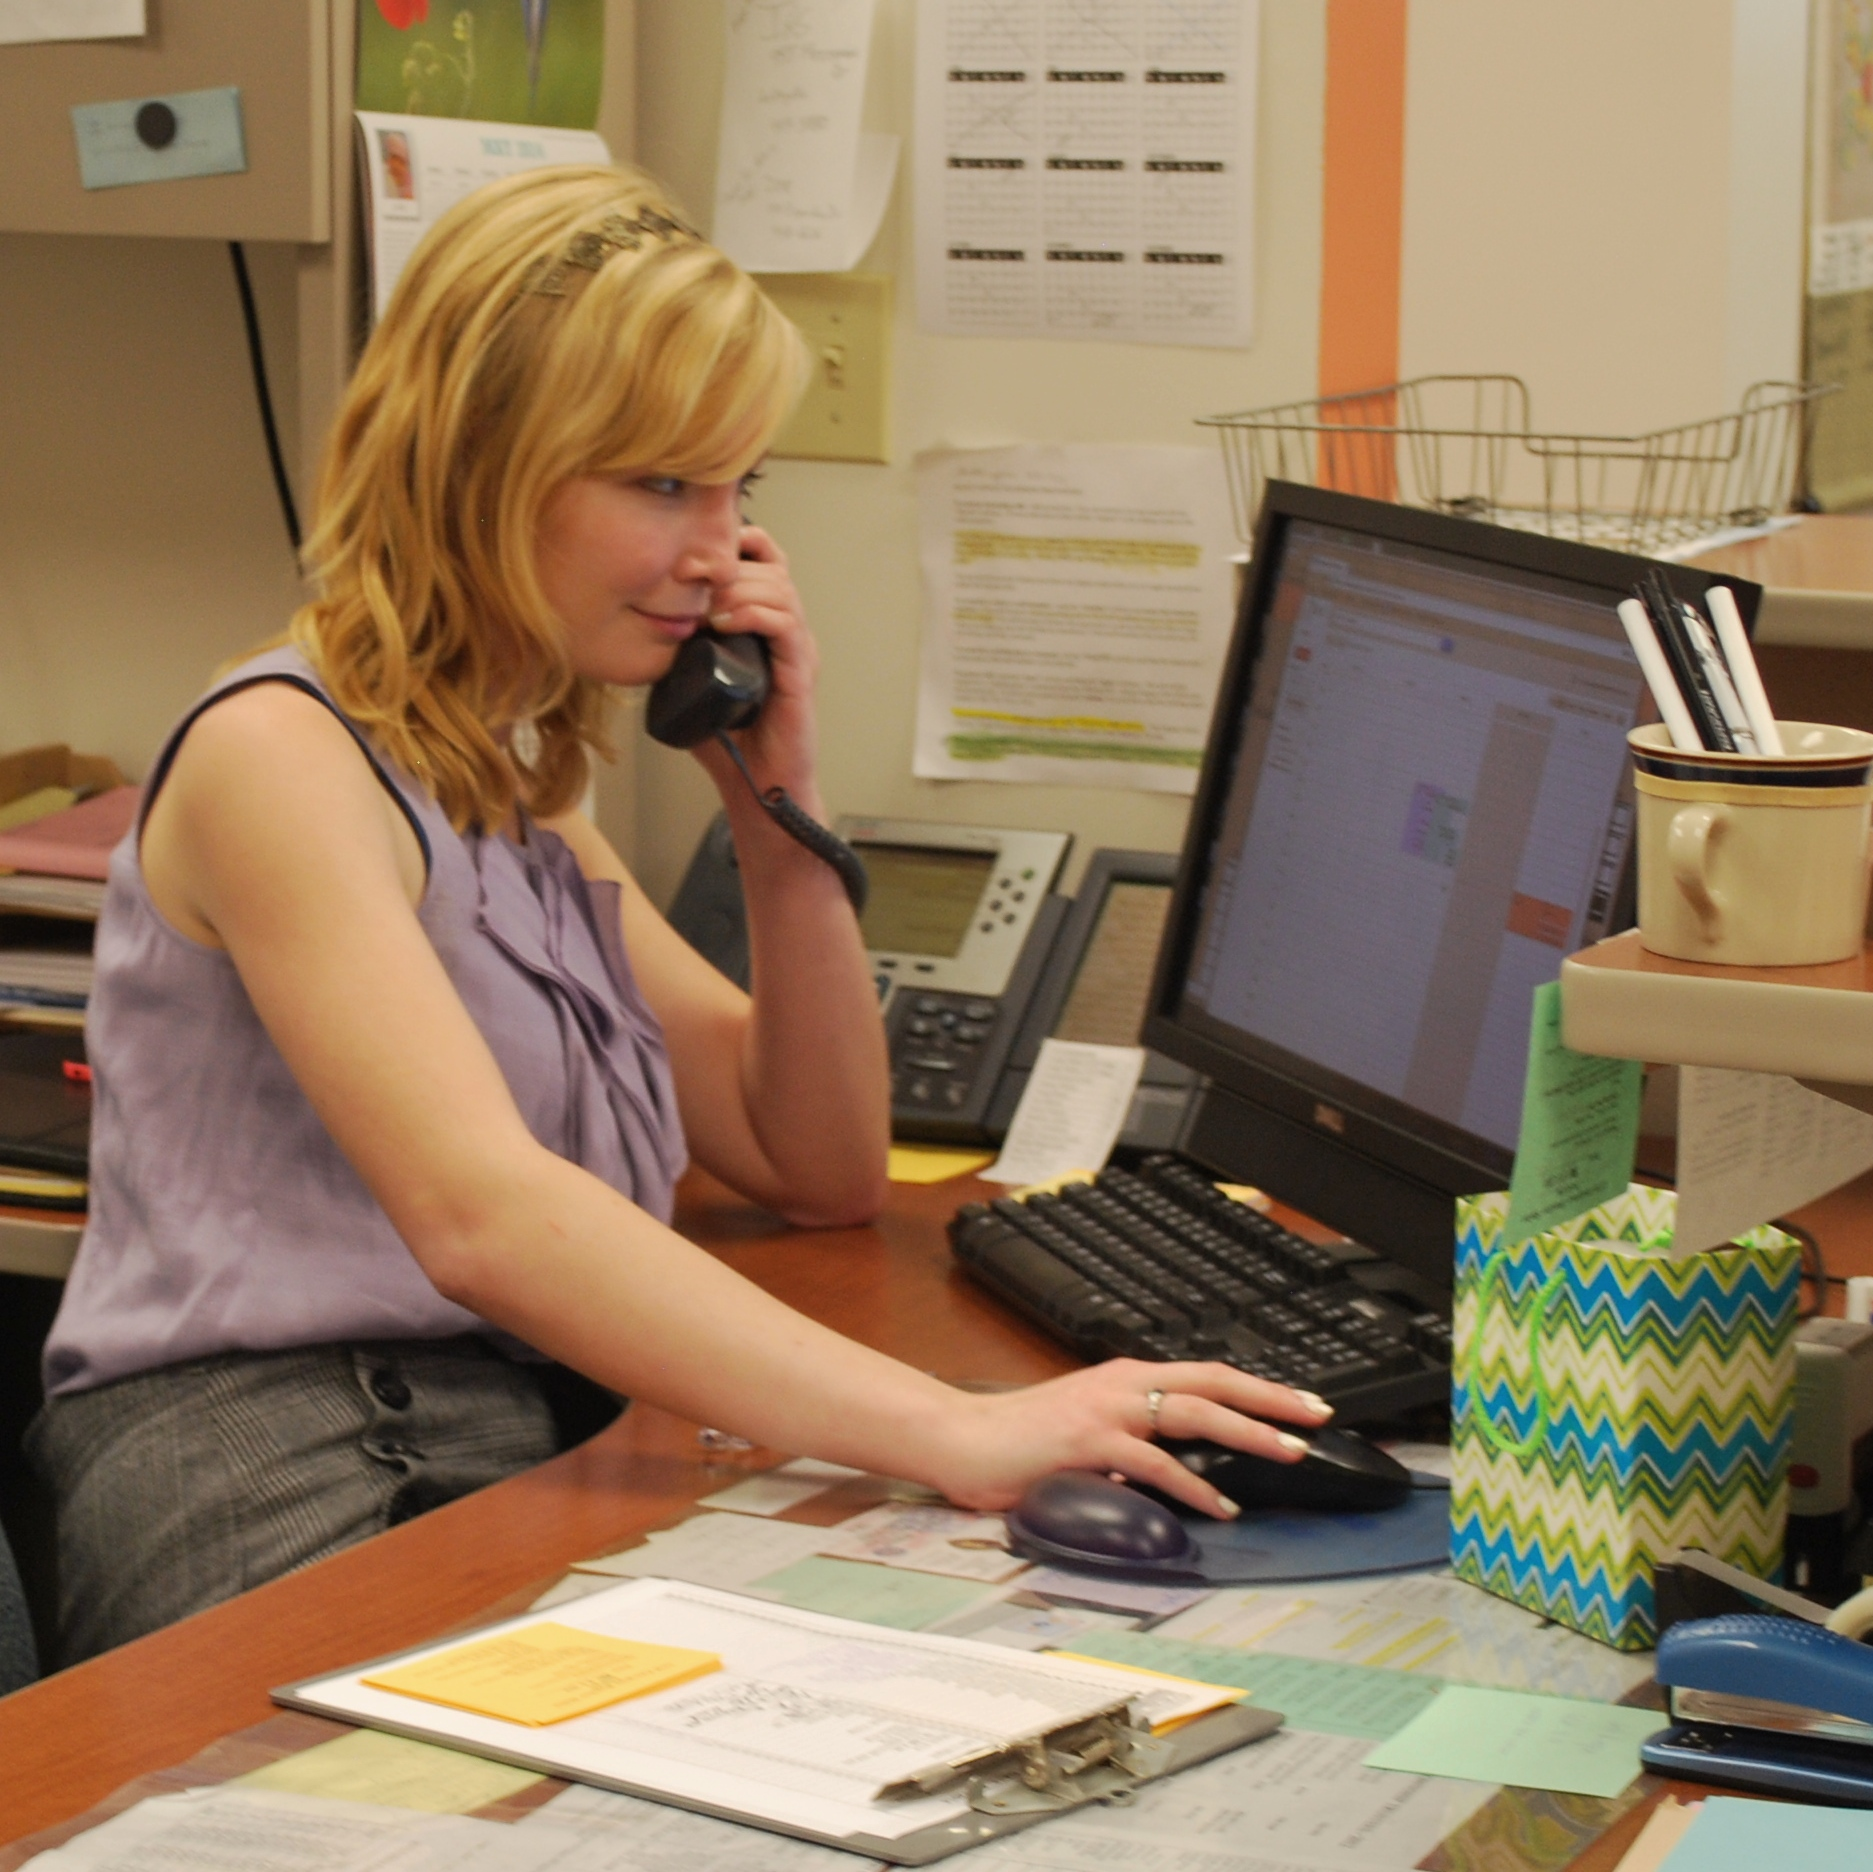 receptionist lafayette urban ministry strong interpersonal skills and an ability to work